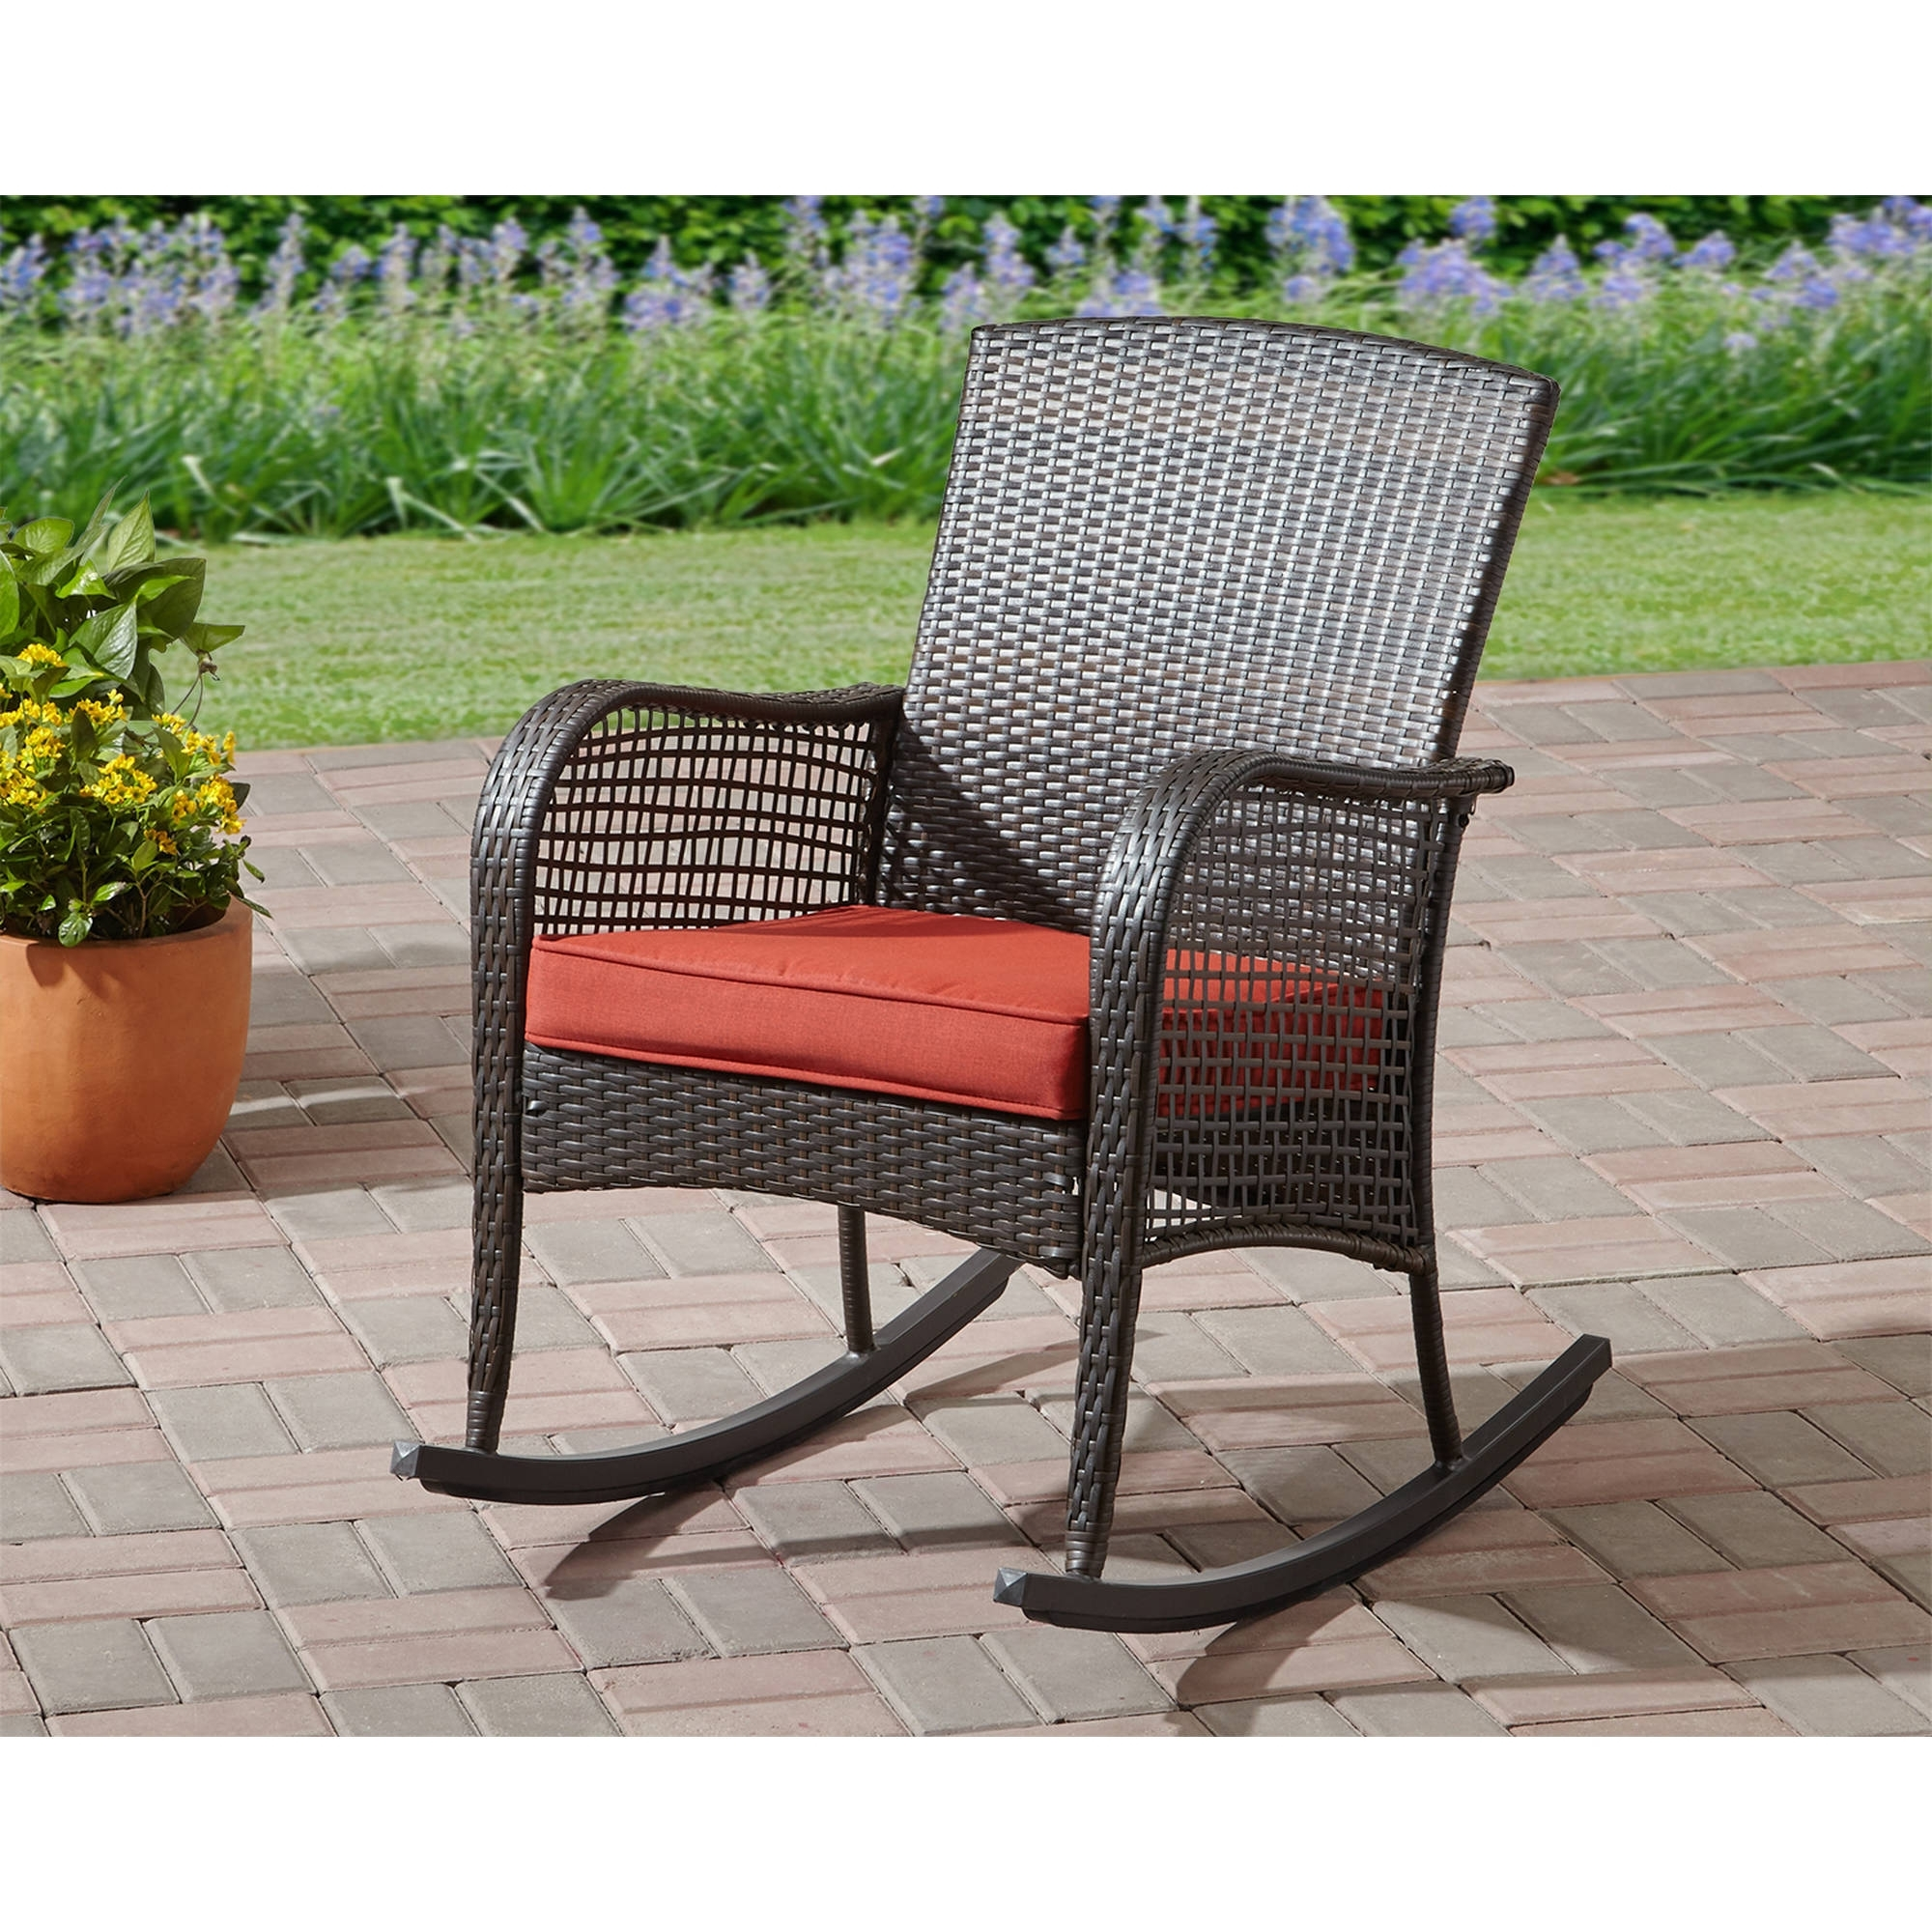 Rattan Outdoor Rocking Chairs Regarding Current Patio Chair And Table – Decco.voiceoverservices (View 9 of 15)